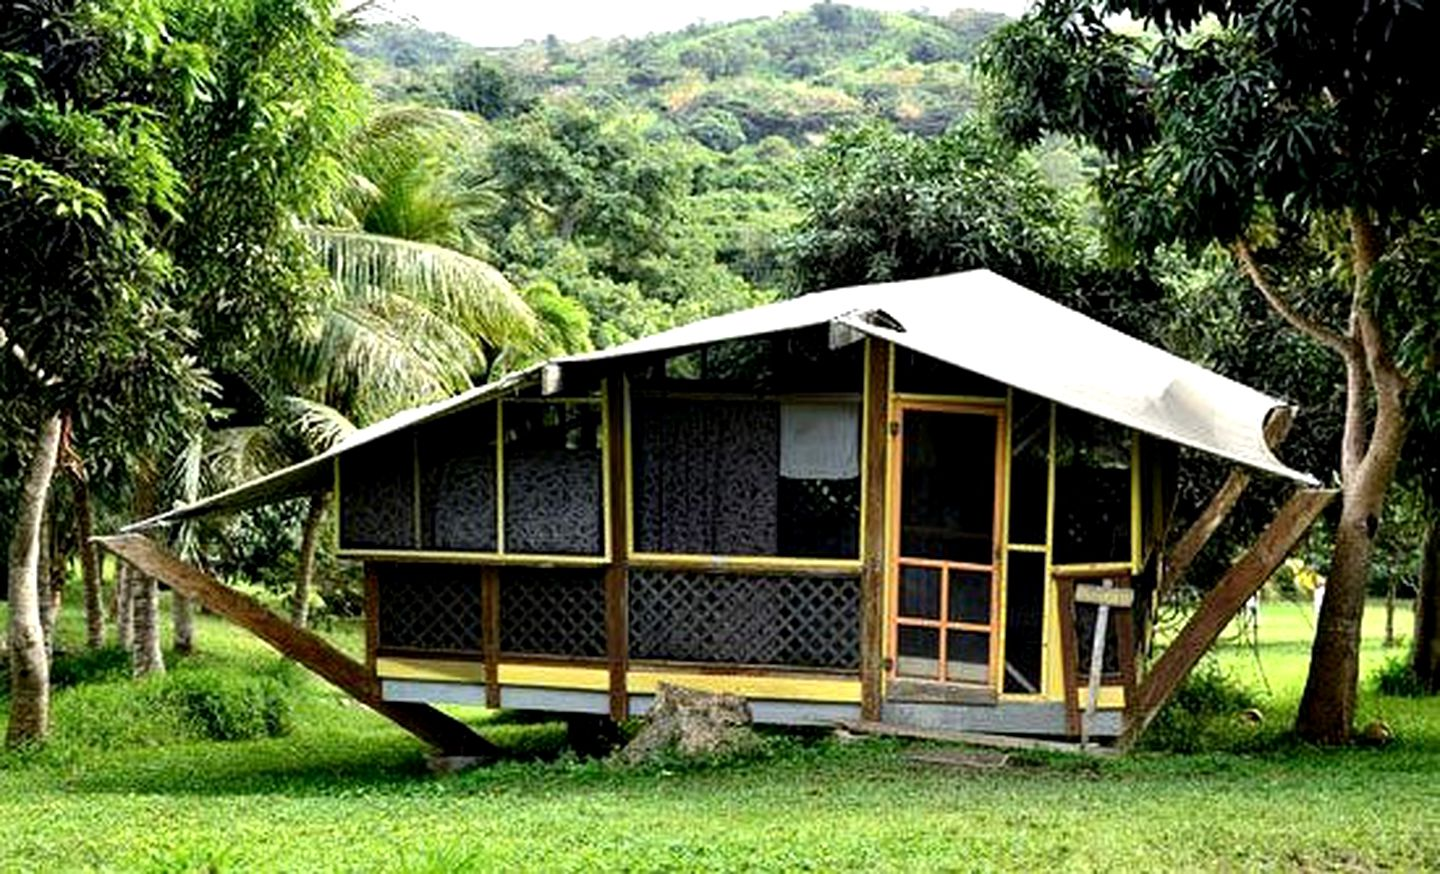 Tented Cabins (Fredericsted, St. Croix, United States Virgin Islands)